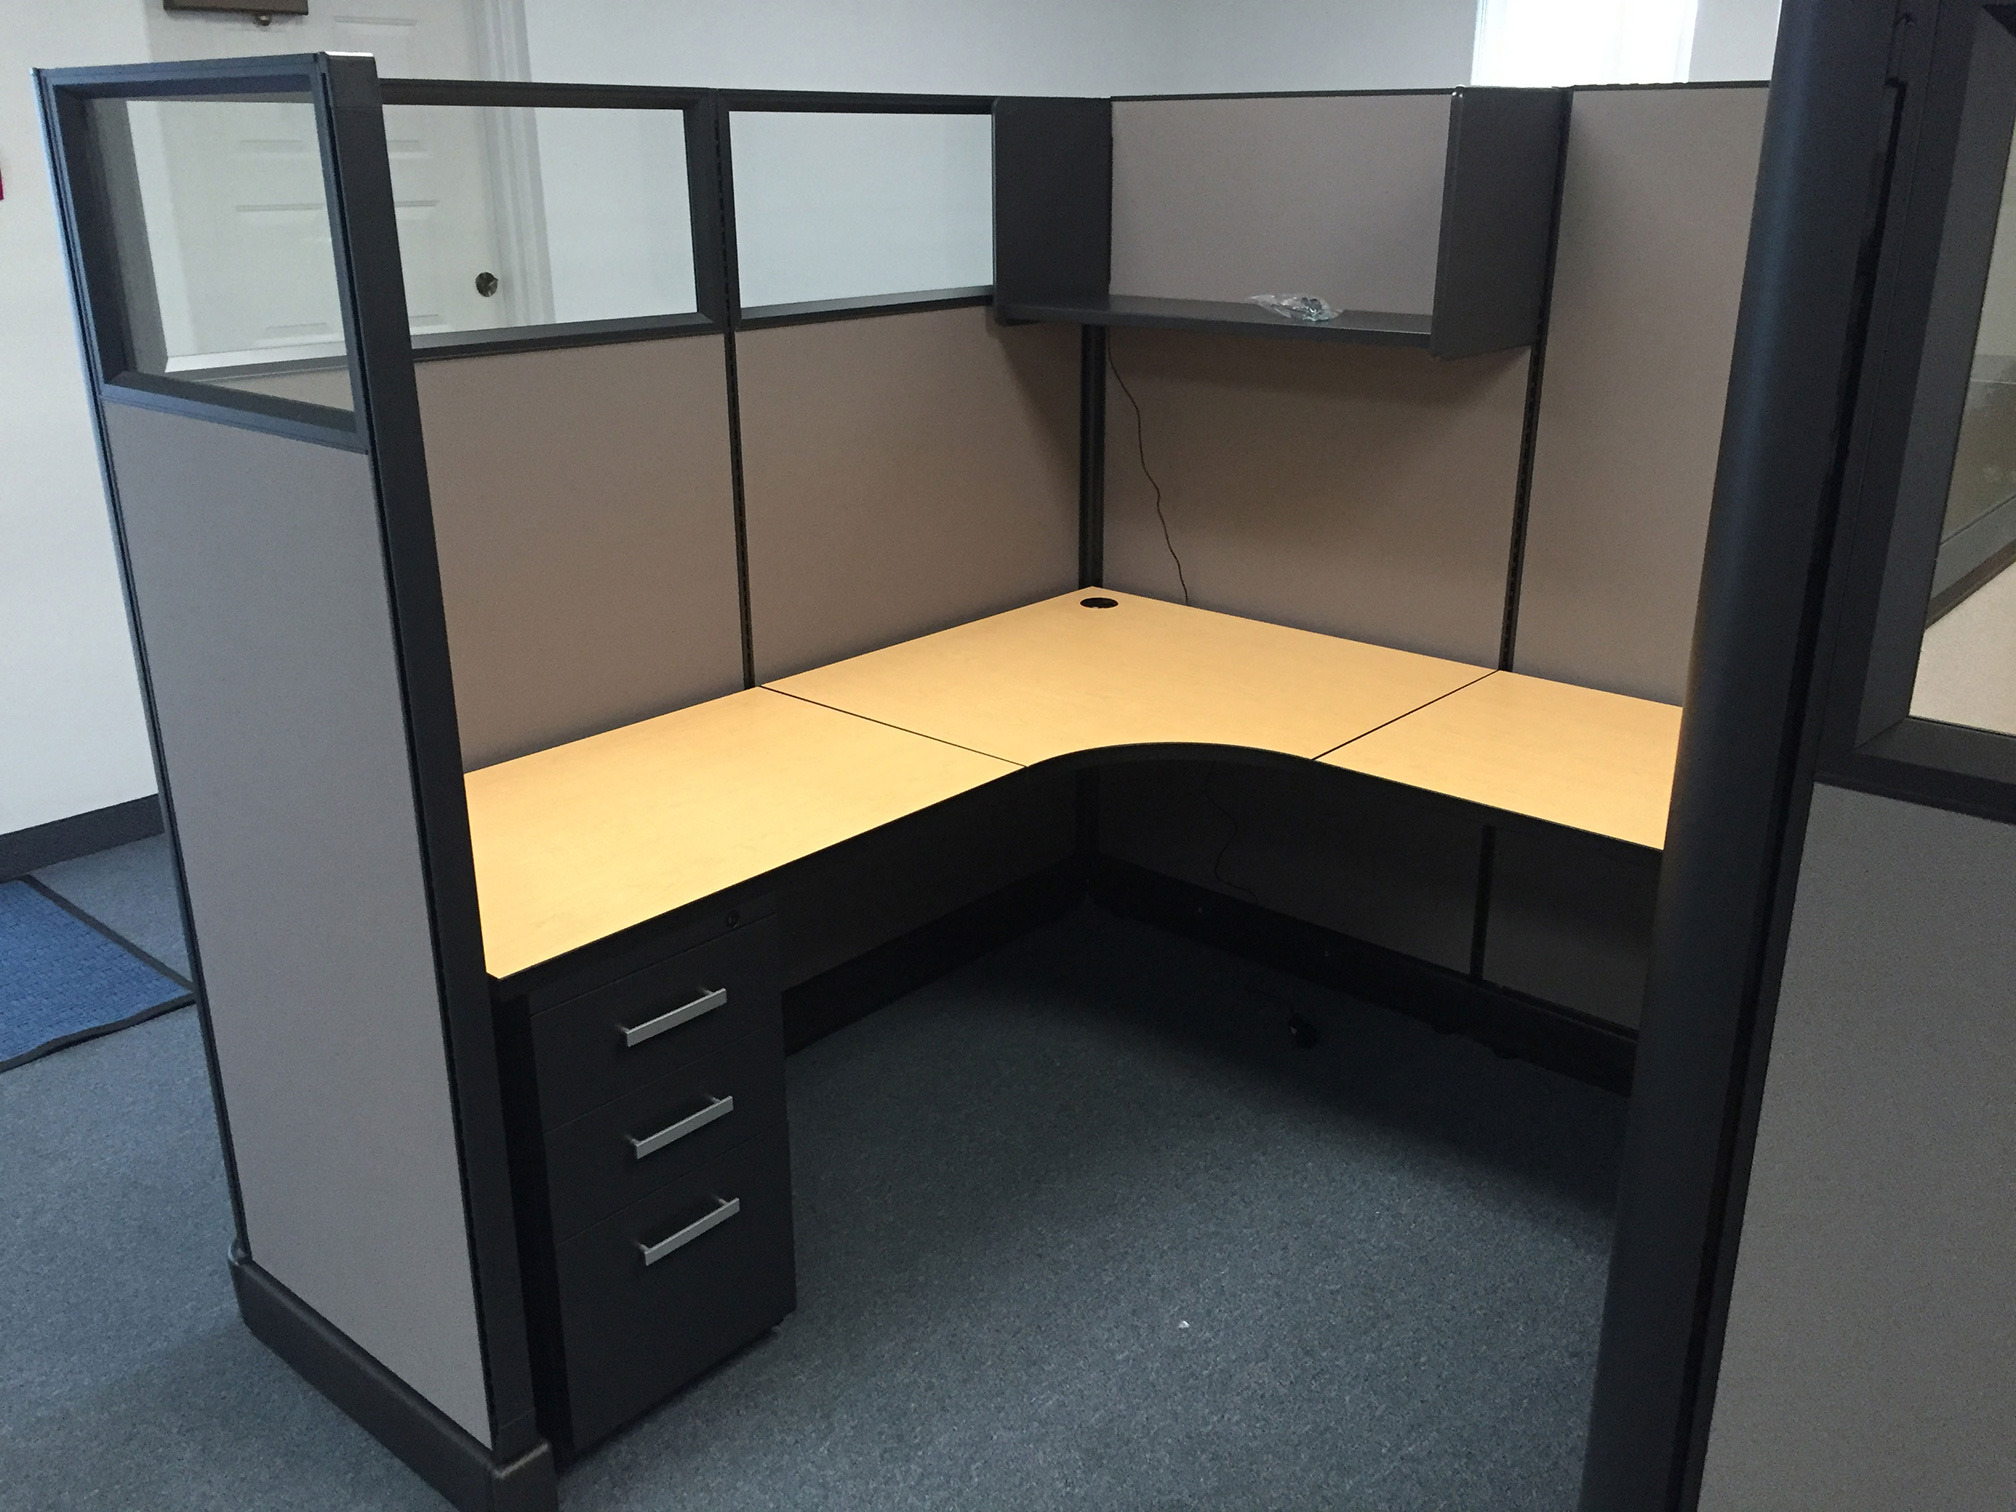 office-cubicles-for-sale-in-deltona-beach-florida-3-1.jpg